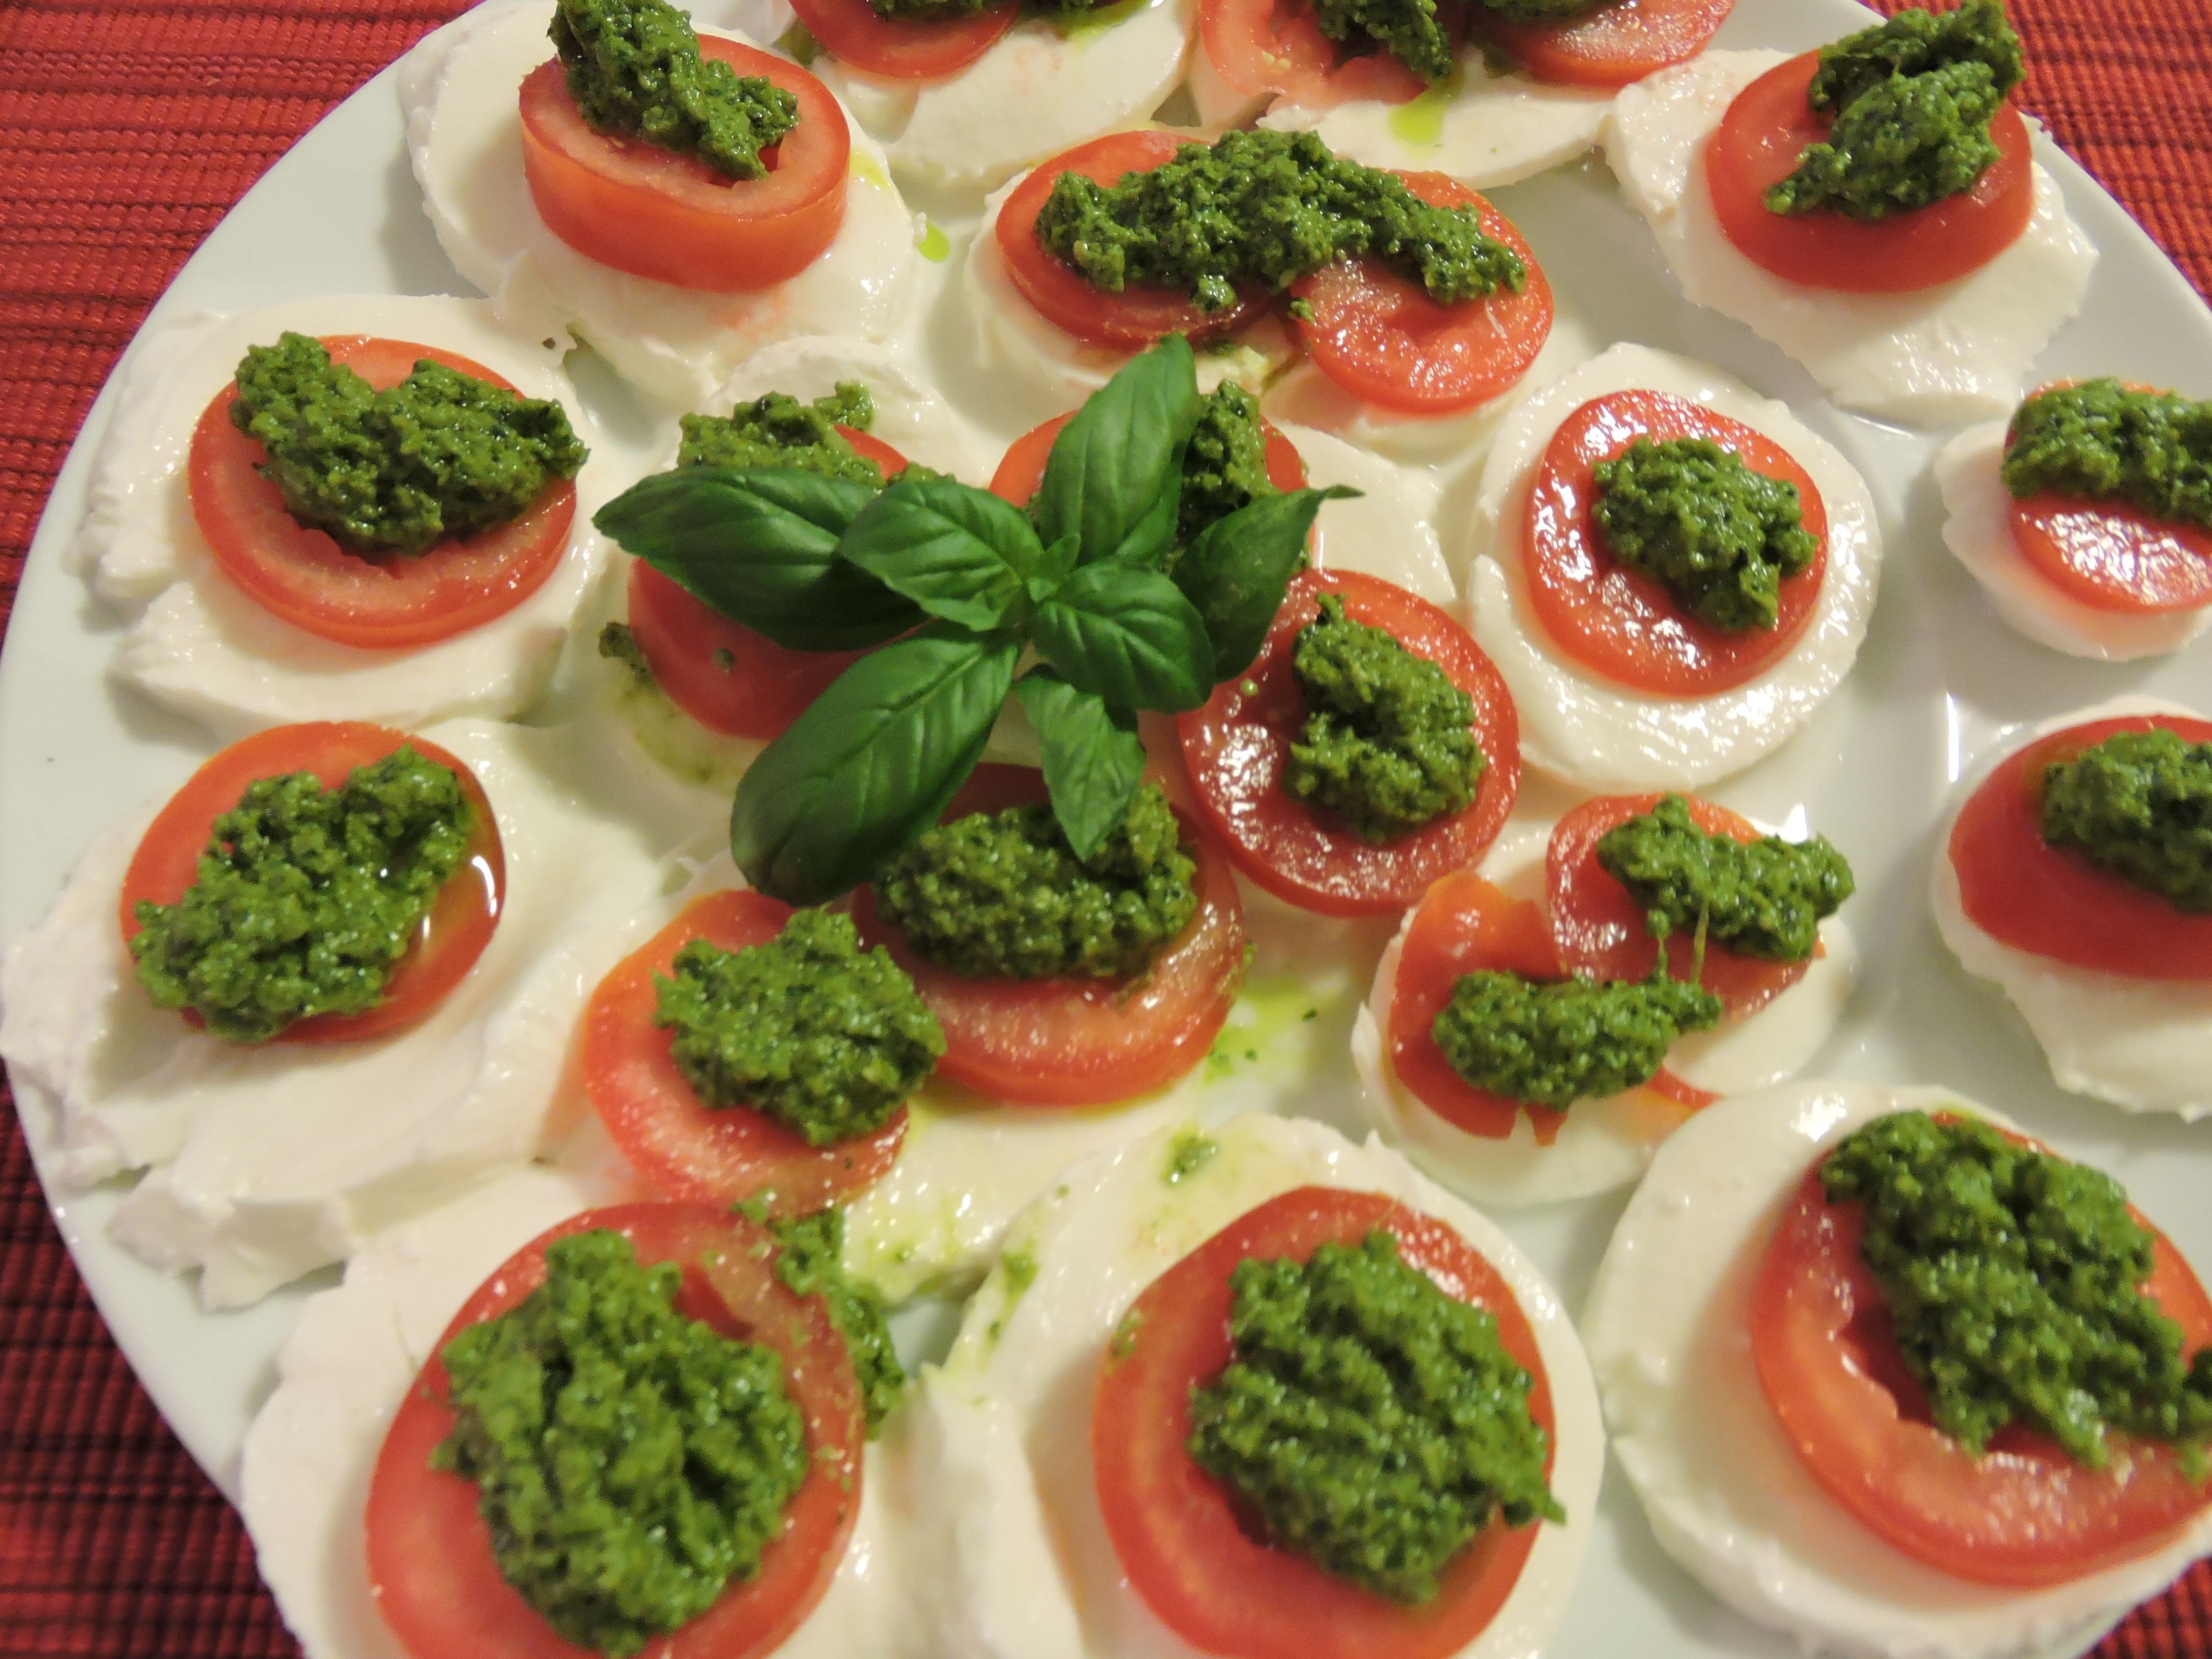 Caprese with a difference......home made pesto in place of simple basil